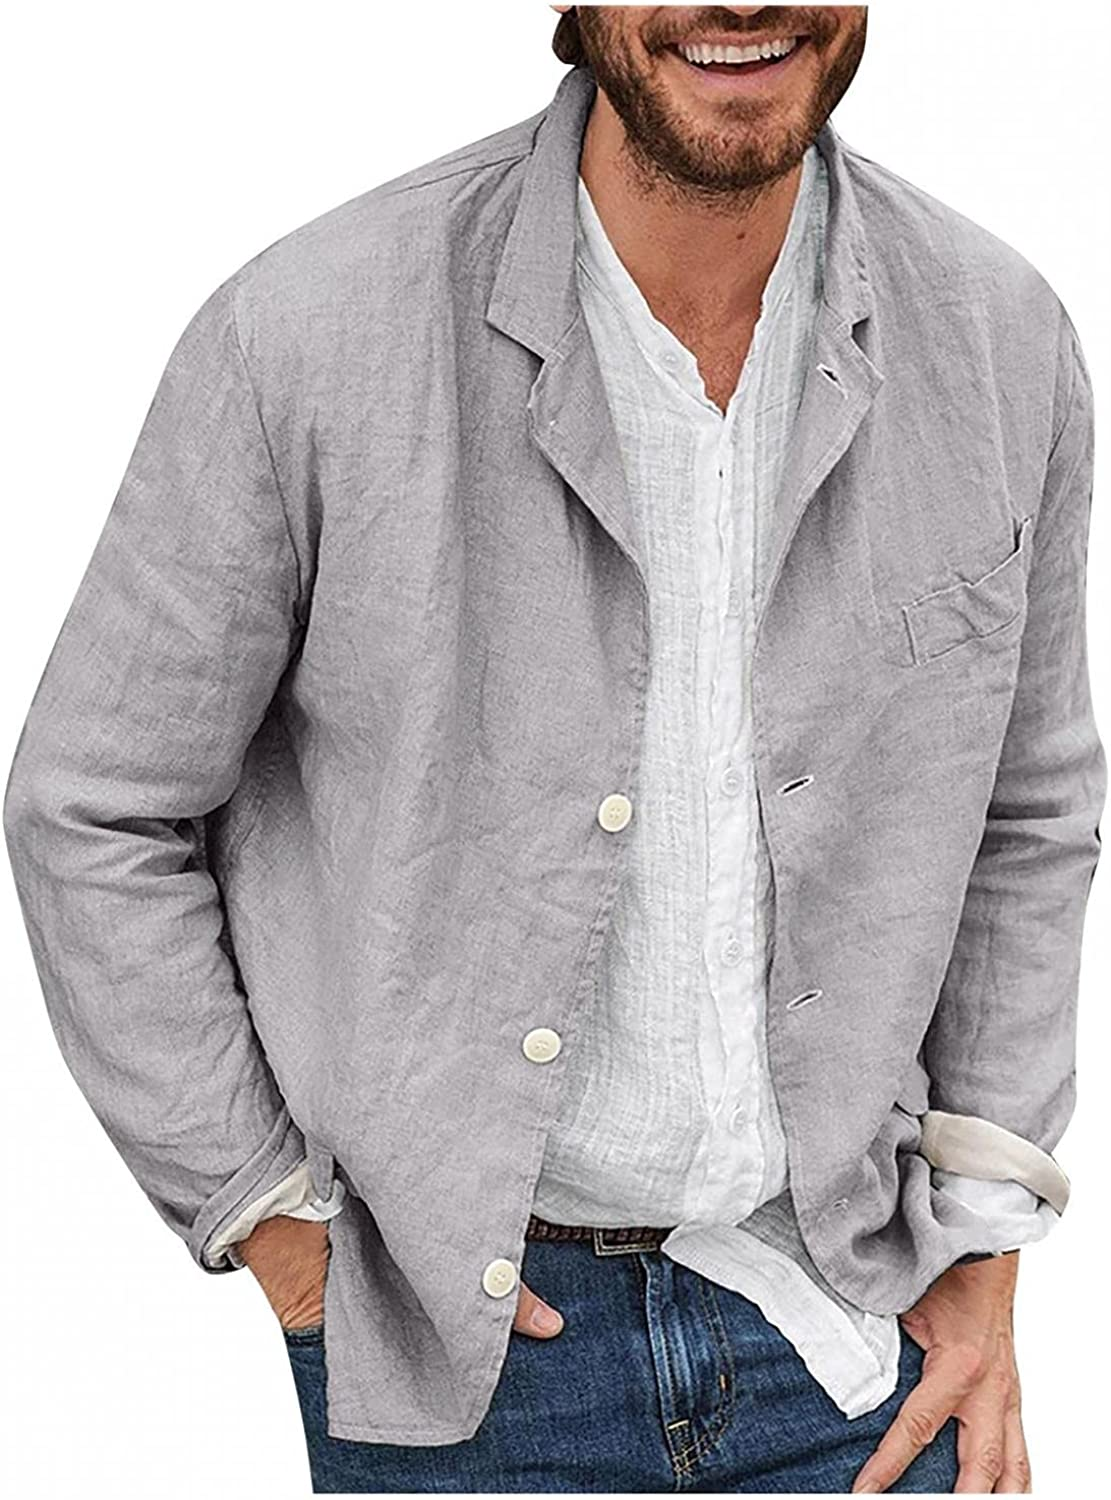 Men's Casual Shirts Coat Solid Lapel Button Down Tops Soft Cozy Cotton Blouse Lightweight Baggy Tees Outwears